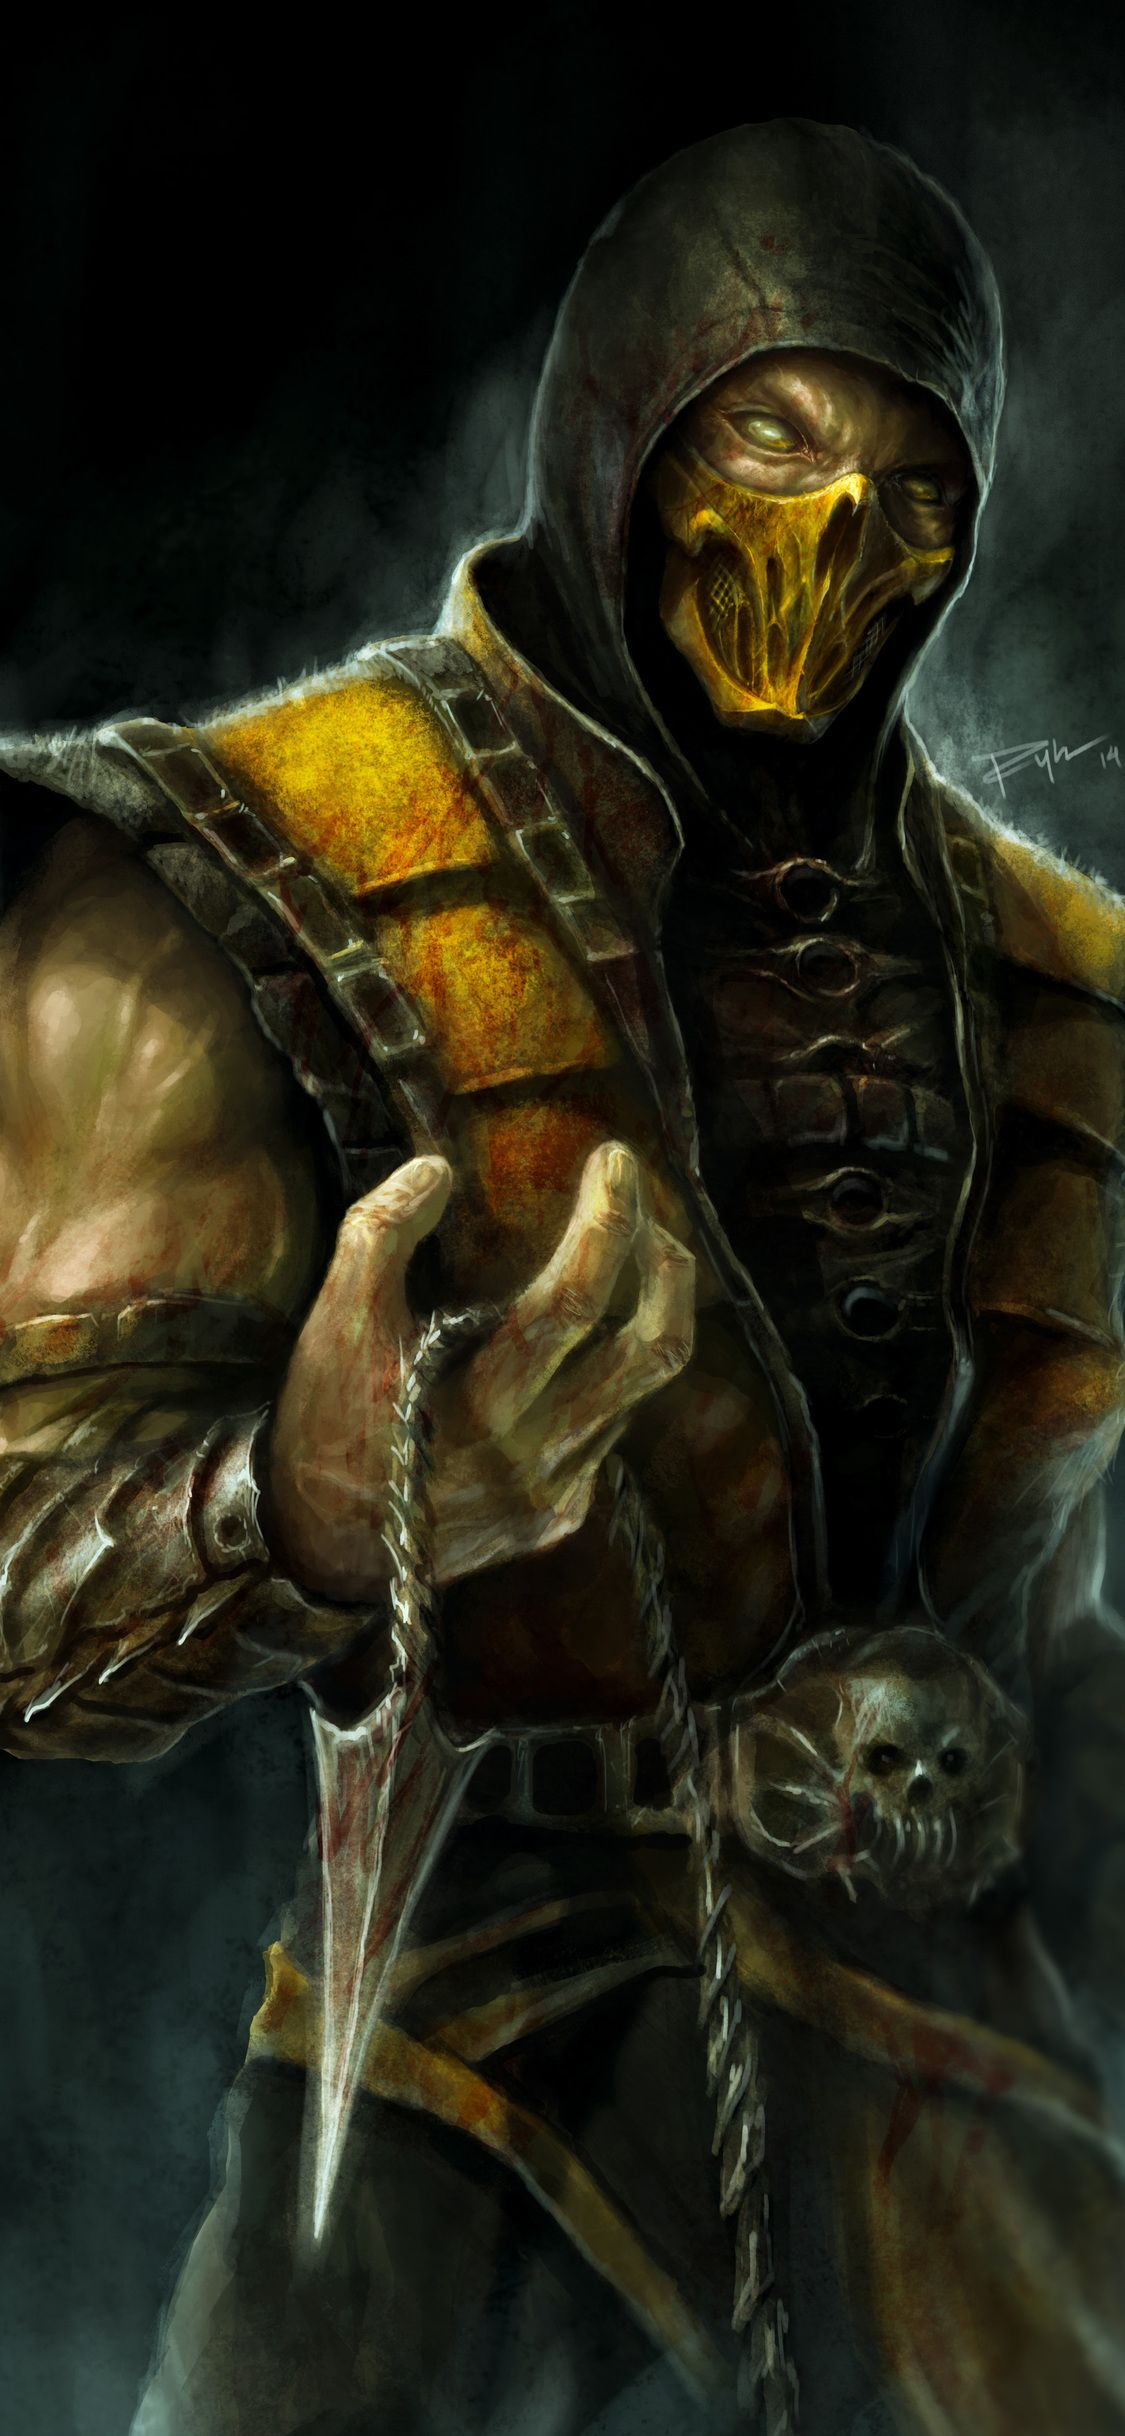 Mortal Kombat Iphone Wallpapers Top Free Mortal Kombat Iphone